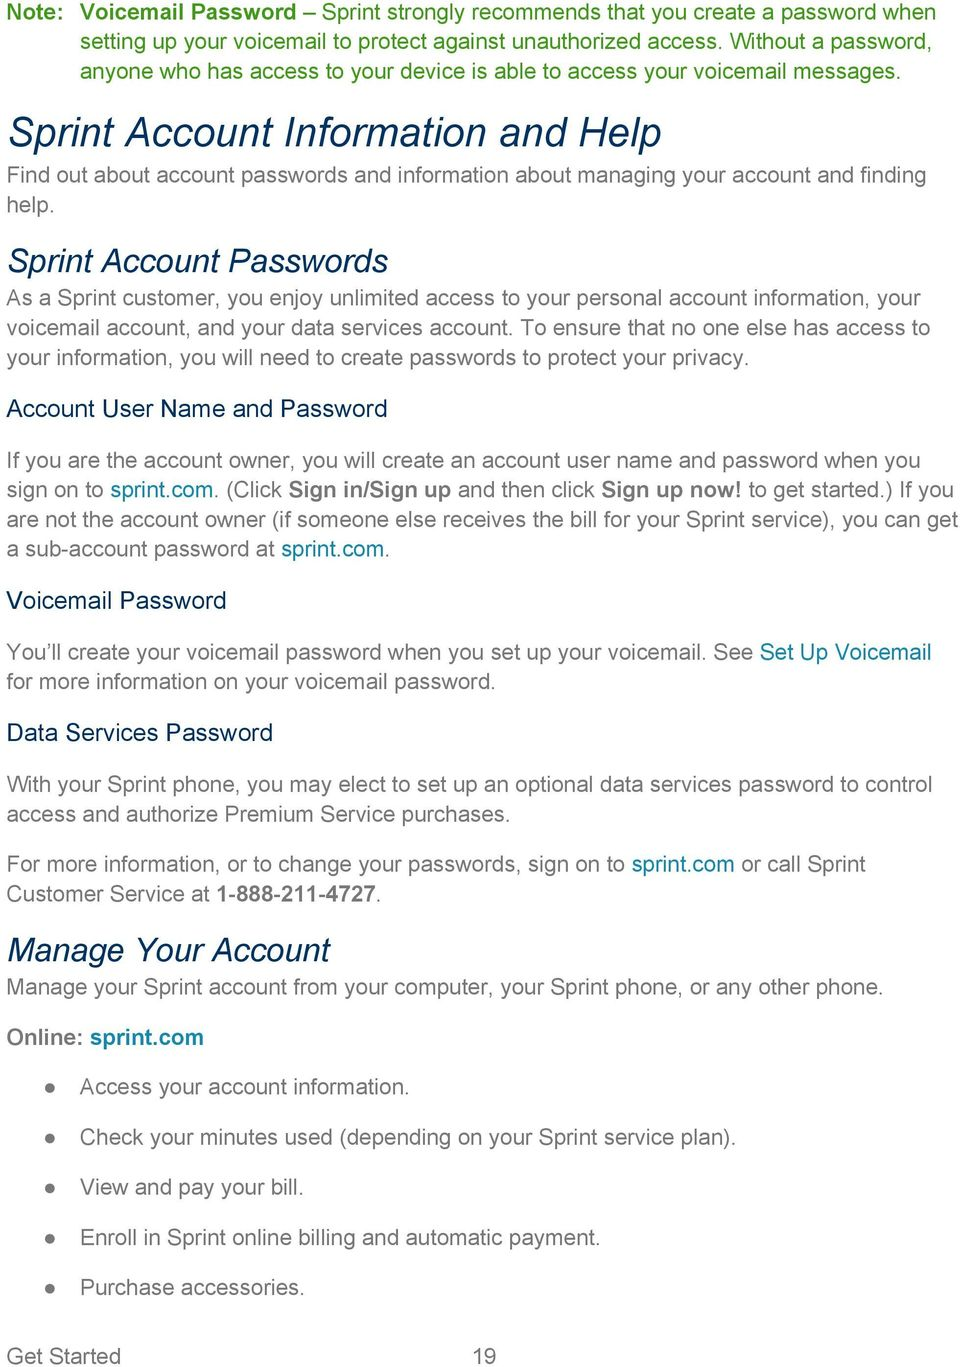 Sprint Account Information and Help Find out about account passwords and information about managing your account and finding help.